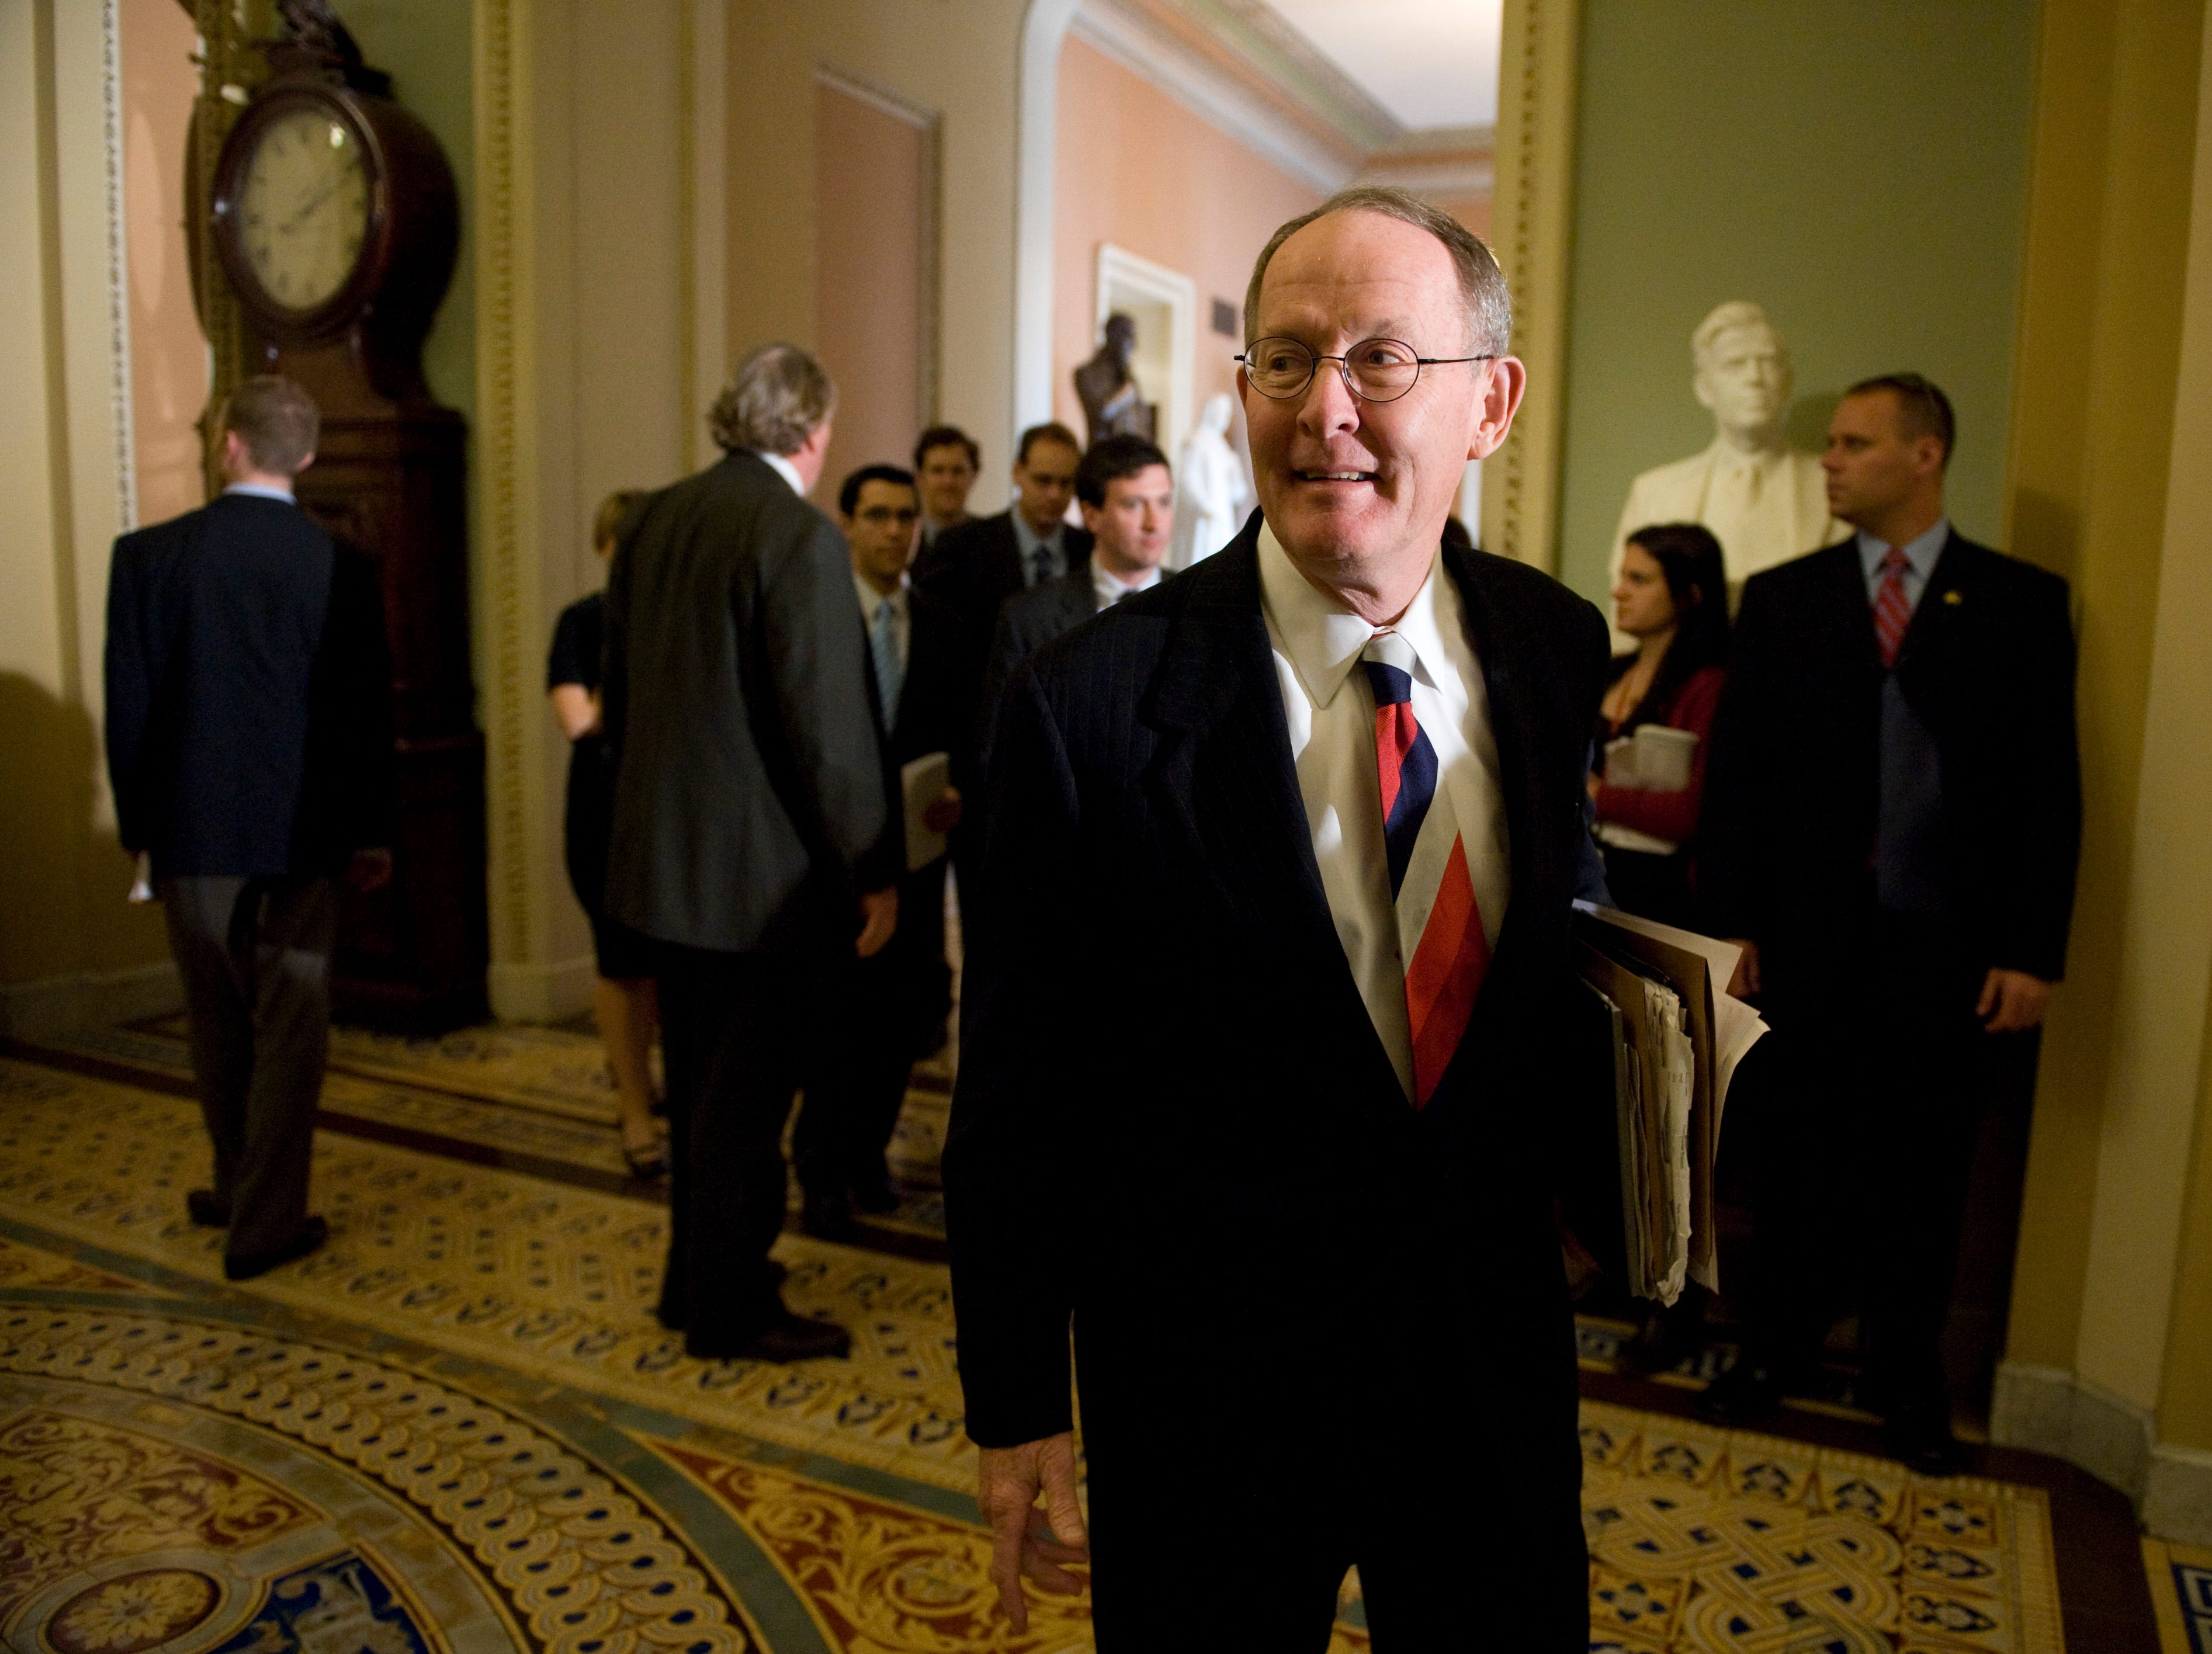 Sen. Lamar Alexander, R-Tenn., walks through the Ohio Clock Corridor in the U.S. Capitol on his way to join the other Senate Republican leaders for their weekly news conference following the Senate Republican Policy Luncheon on Tuesday, May 20, 2008. Sen. Alexander's chief of staff Tom Ingram is seen in the background to the left.